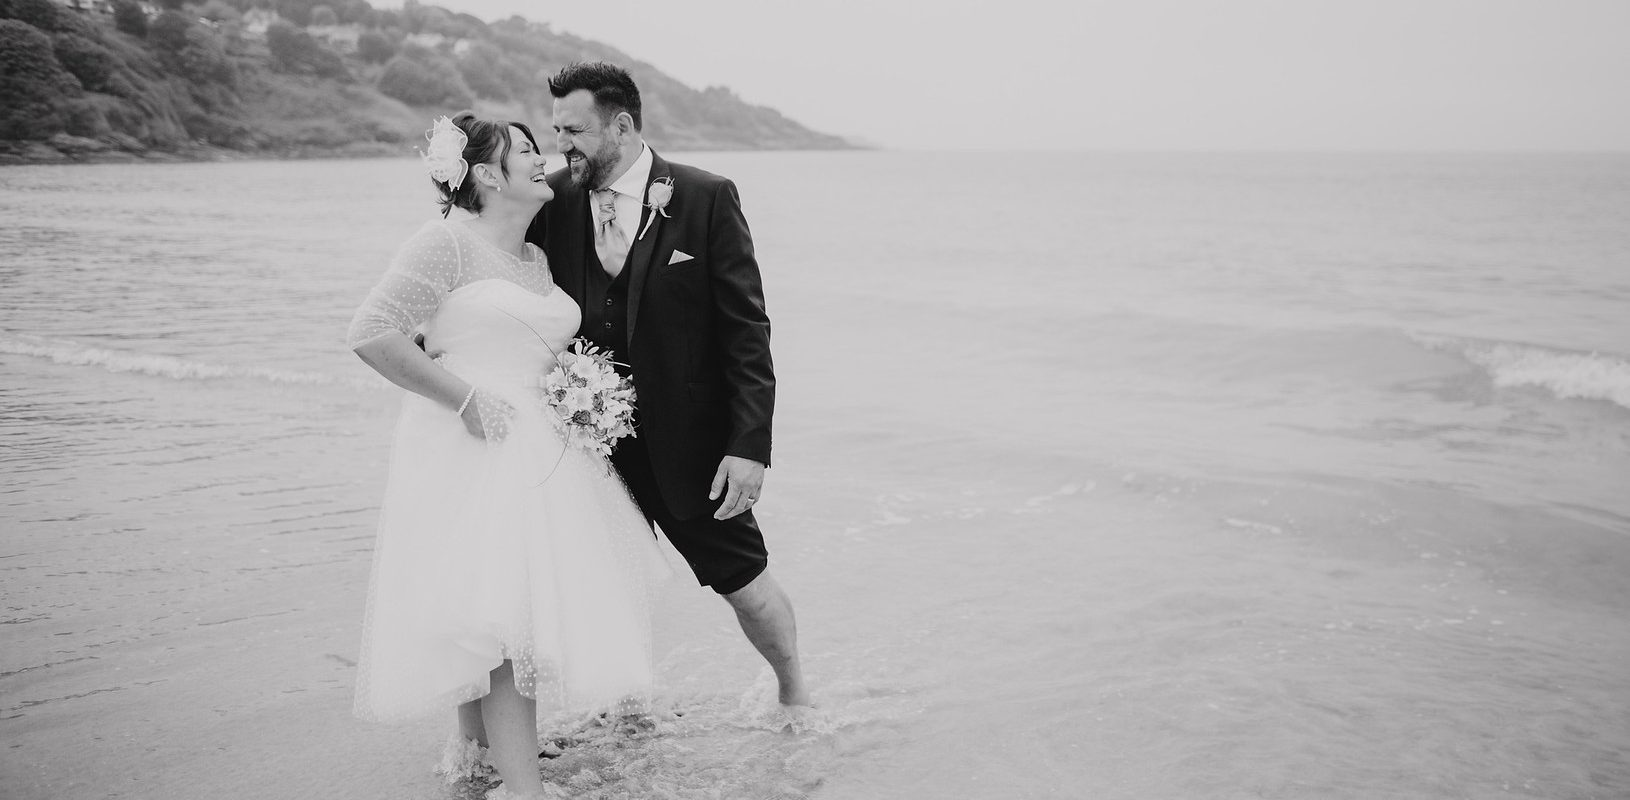 Michelle & Michael's Elopement at Carbis Bay Hotel